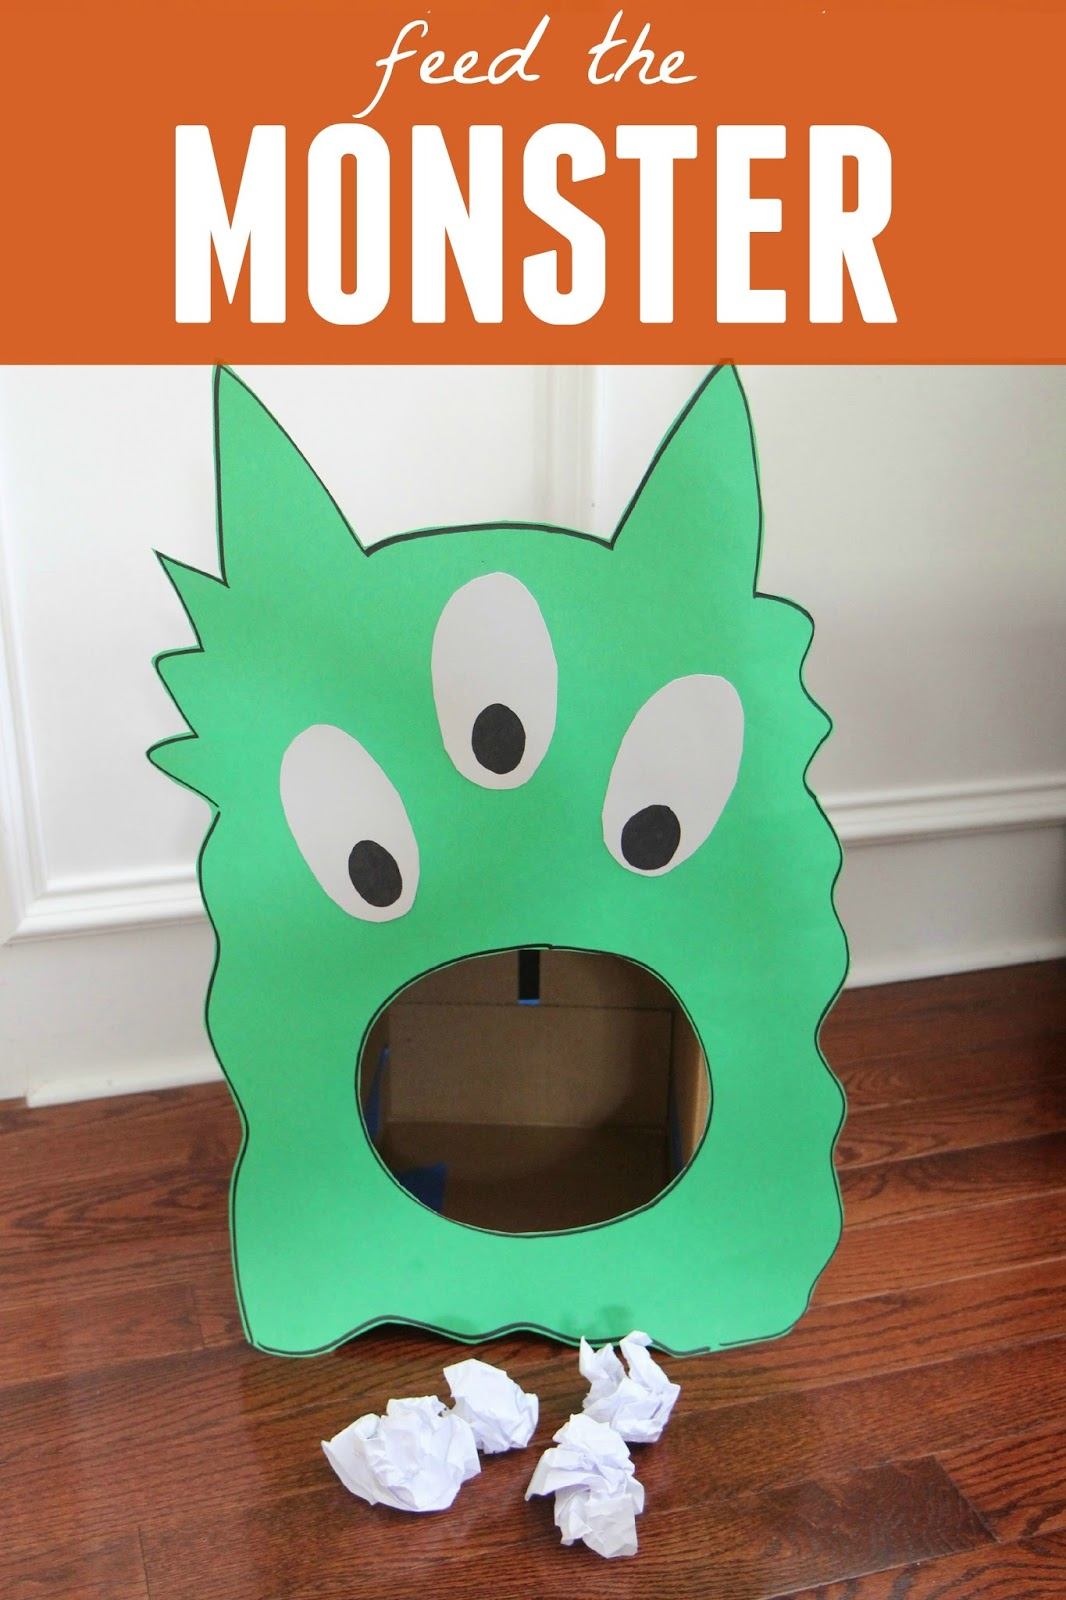 Toddler Approved Feed The Monster Game For Toddlers